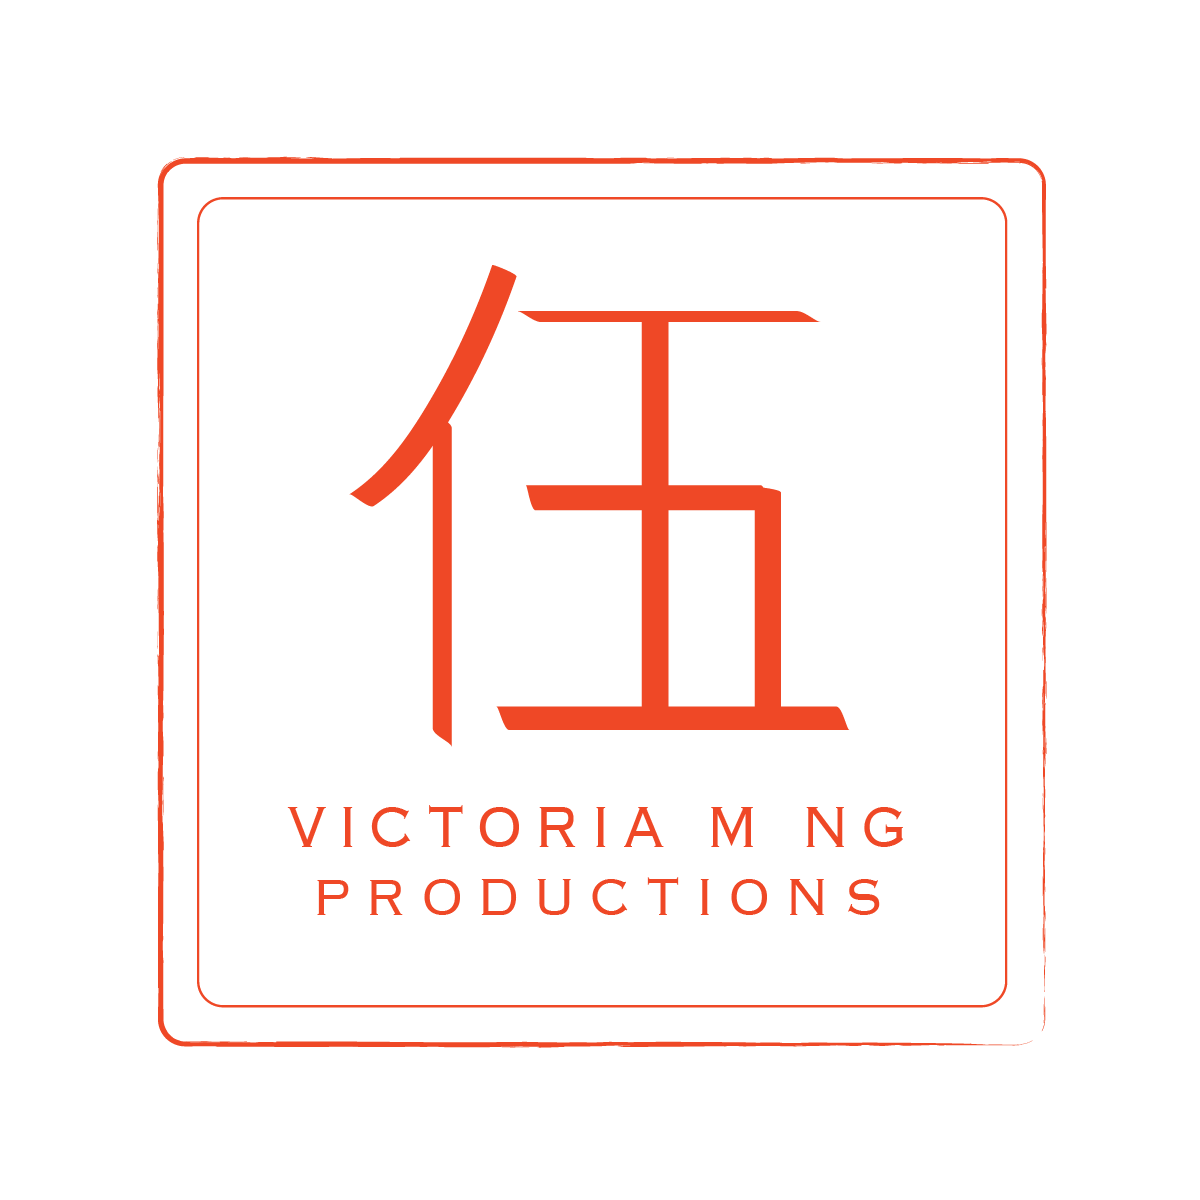 Victoria M Ng Productions